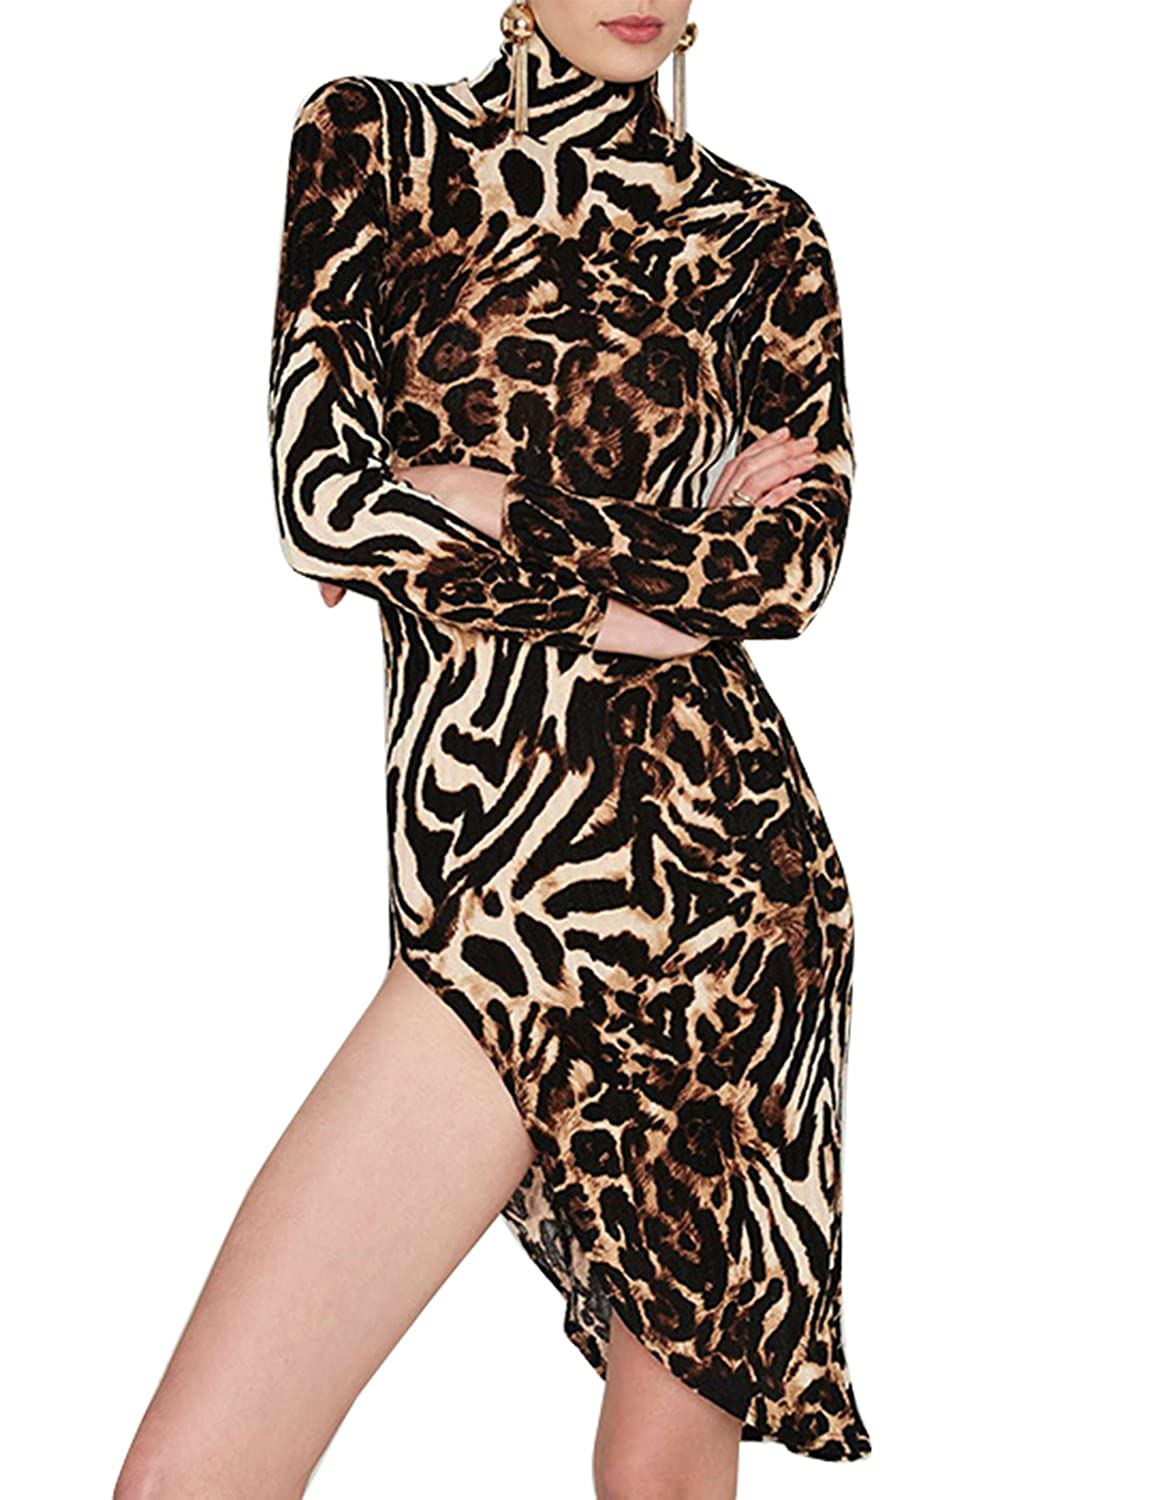 Haoduoyi Womens Sexy Leopard Print High Collar Asymmetric Bodycon Dress